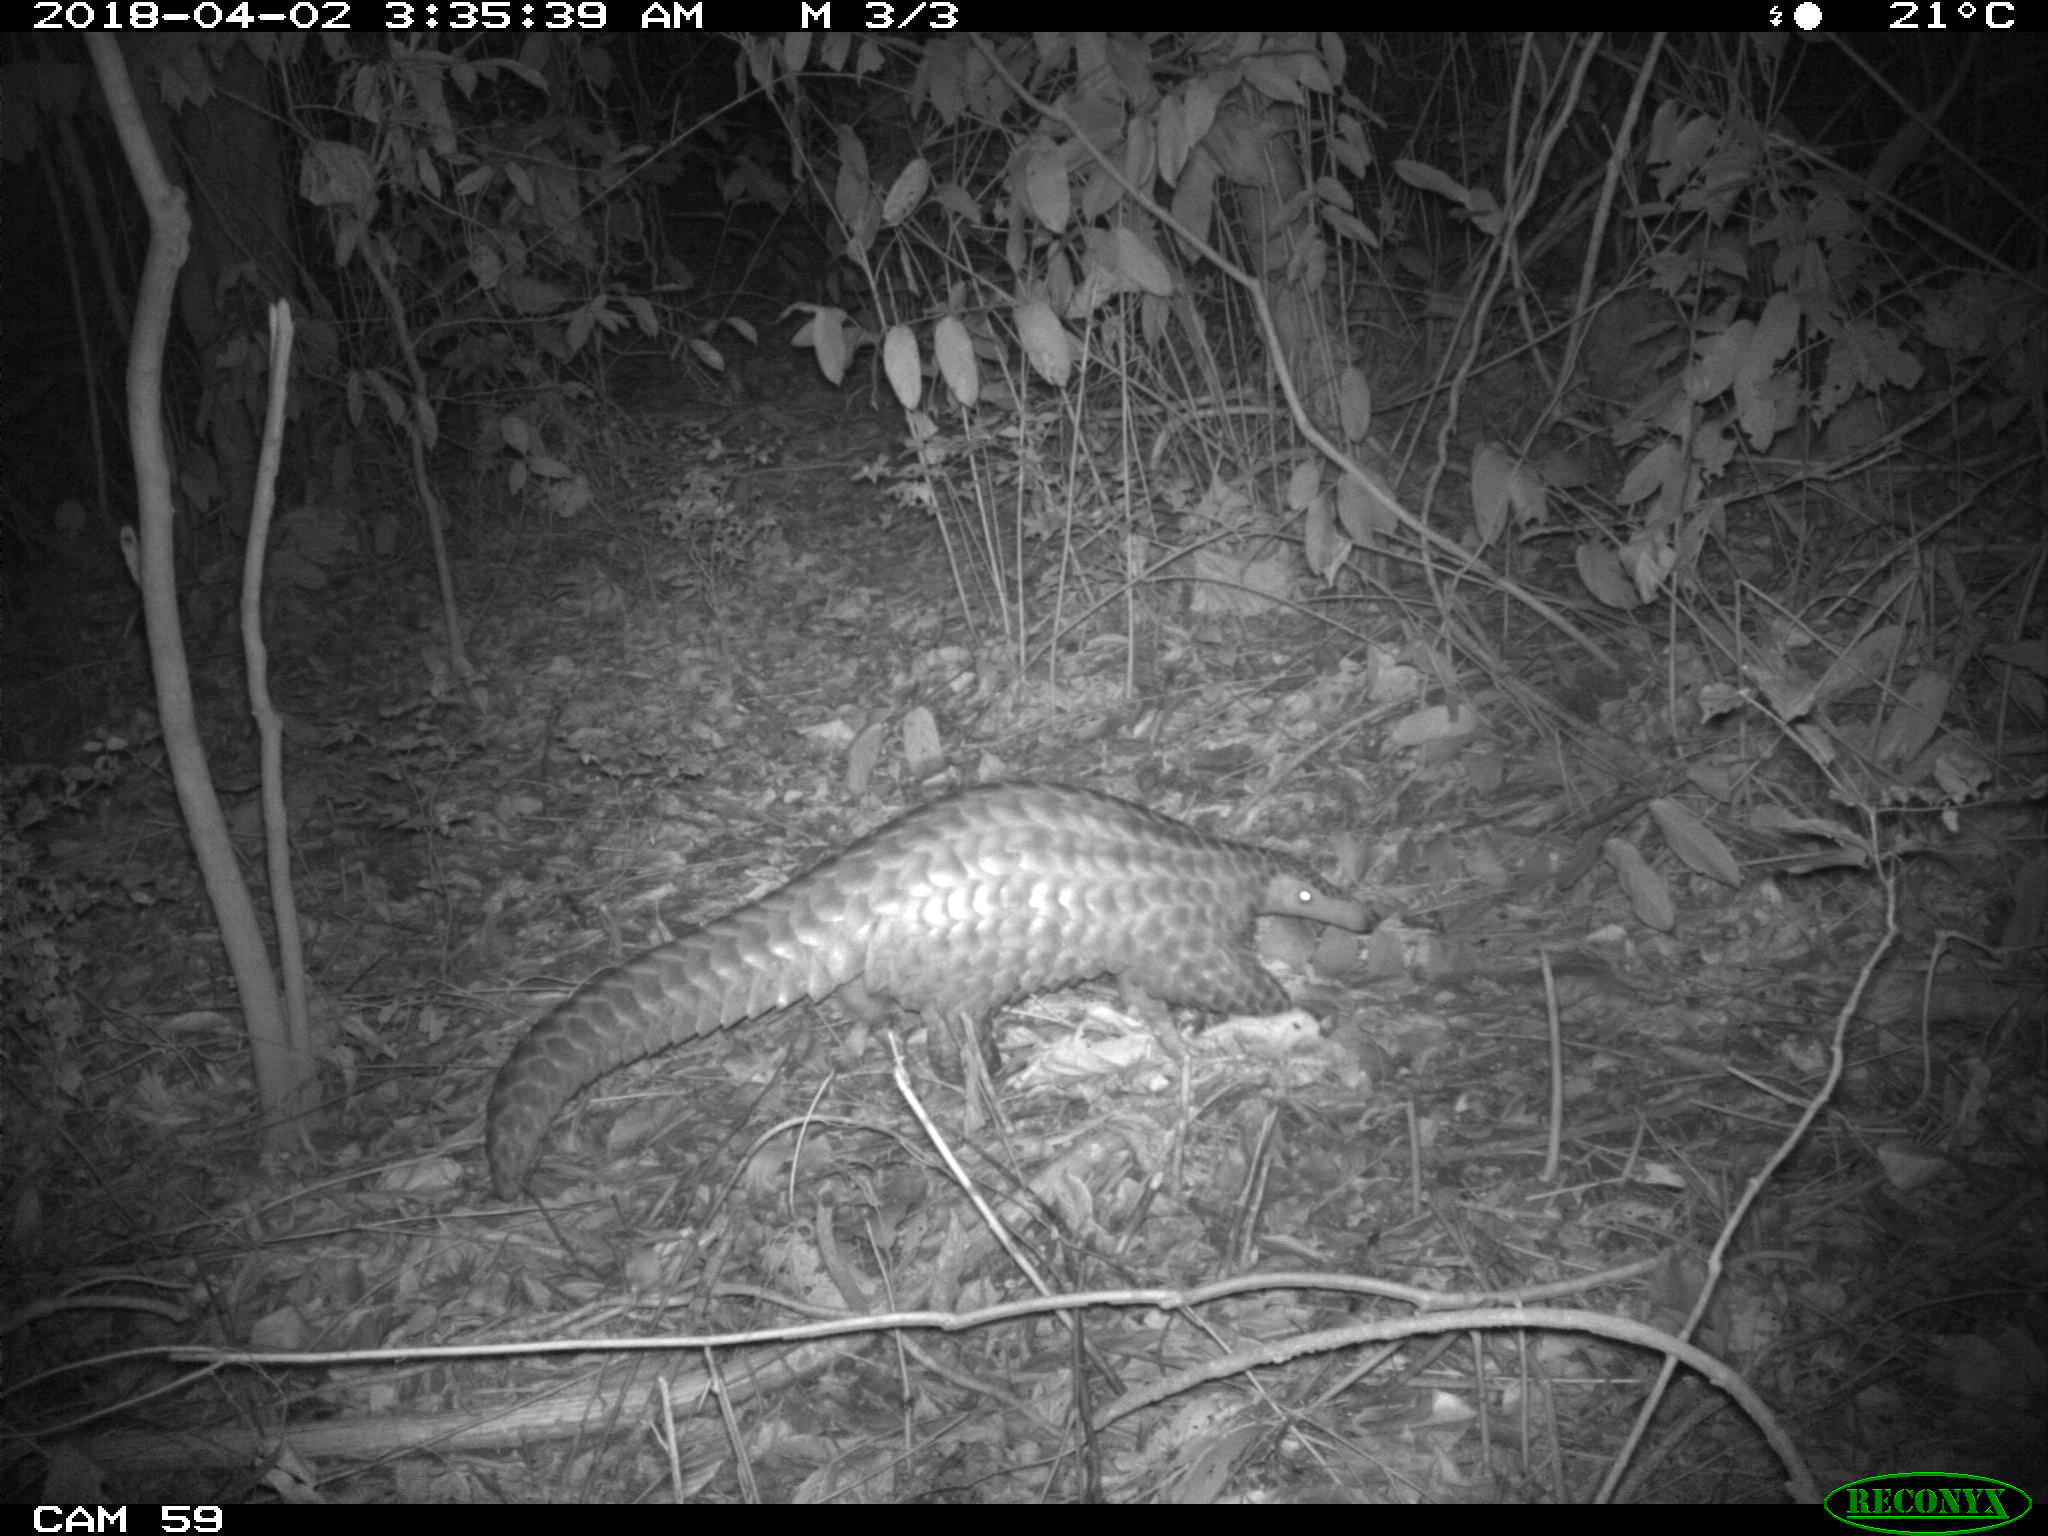 Camera trap image of a pangolin foraging at night in South Sudan. Credit: Bucknell University/Fauna and Flora International